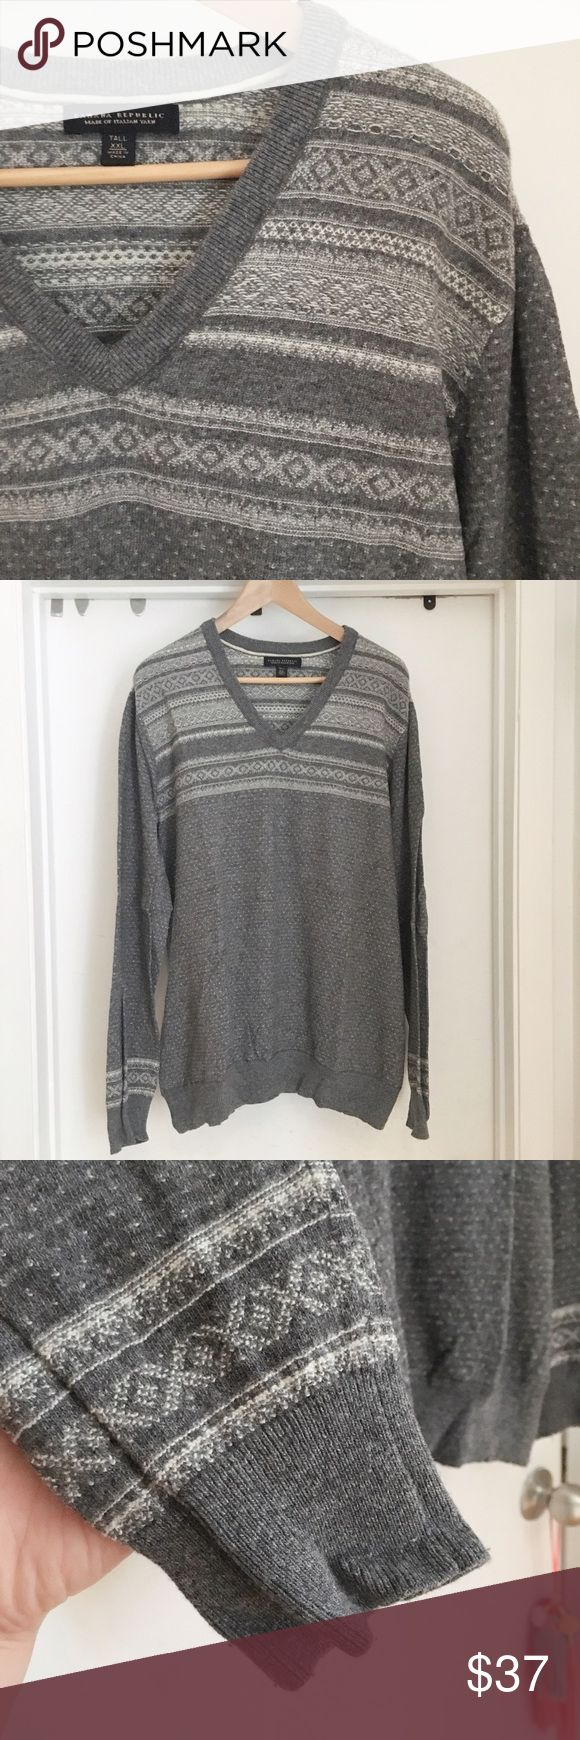 Banana Republic Fair Isle Boyfriend Sweater Super cute and cozy oversize boyfriend sweater from Banana republic. Looks great with skinned or leggings, or even tights if your height allows. The sweater is long because it is a Men's XXL Tall. Perfect proportions for the slouchy boyfriend fit 💕✌🏻 Banana Republic Sweaters V-Necks